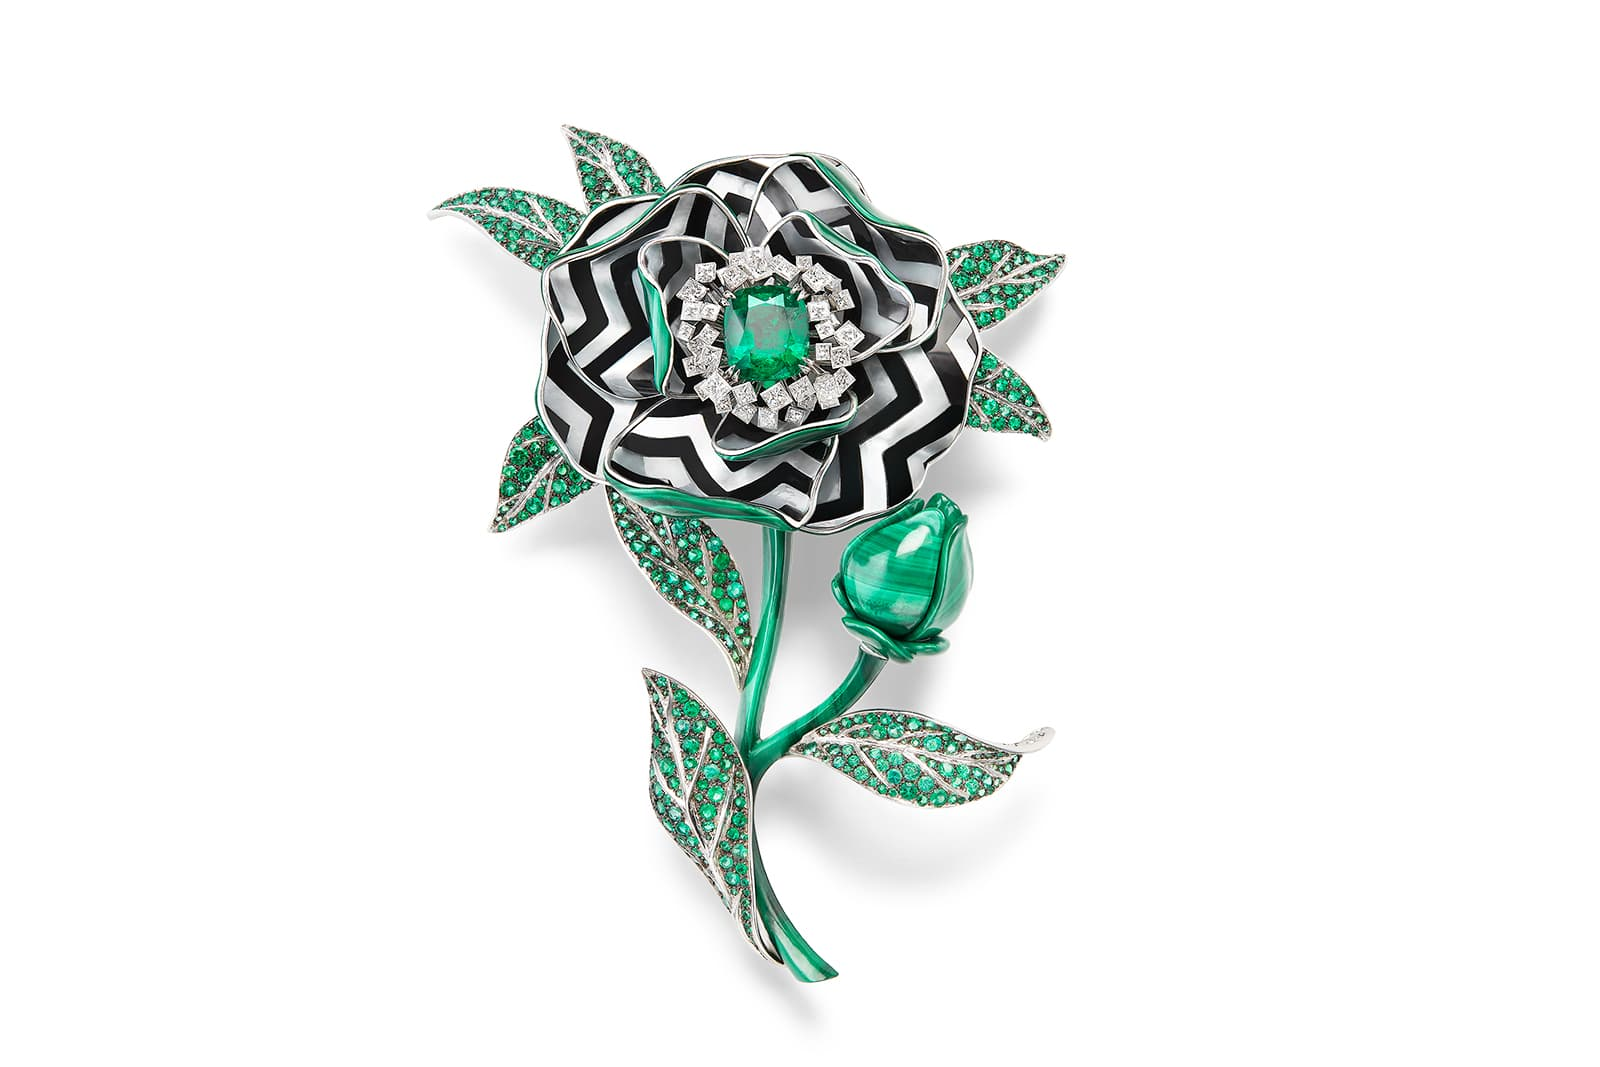 Boucheron 'Nature Triomphante' transformable brooch with malachite, Colombian emerald, emeralds, diamonds, mother-of-pearl and lacquer in white gold